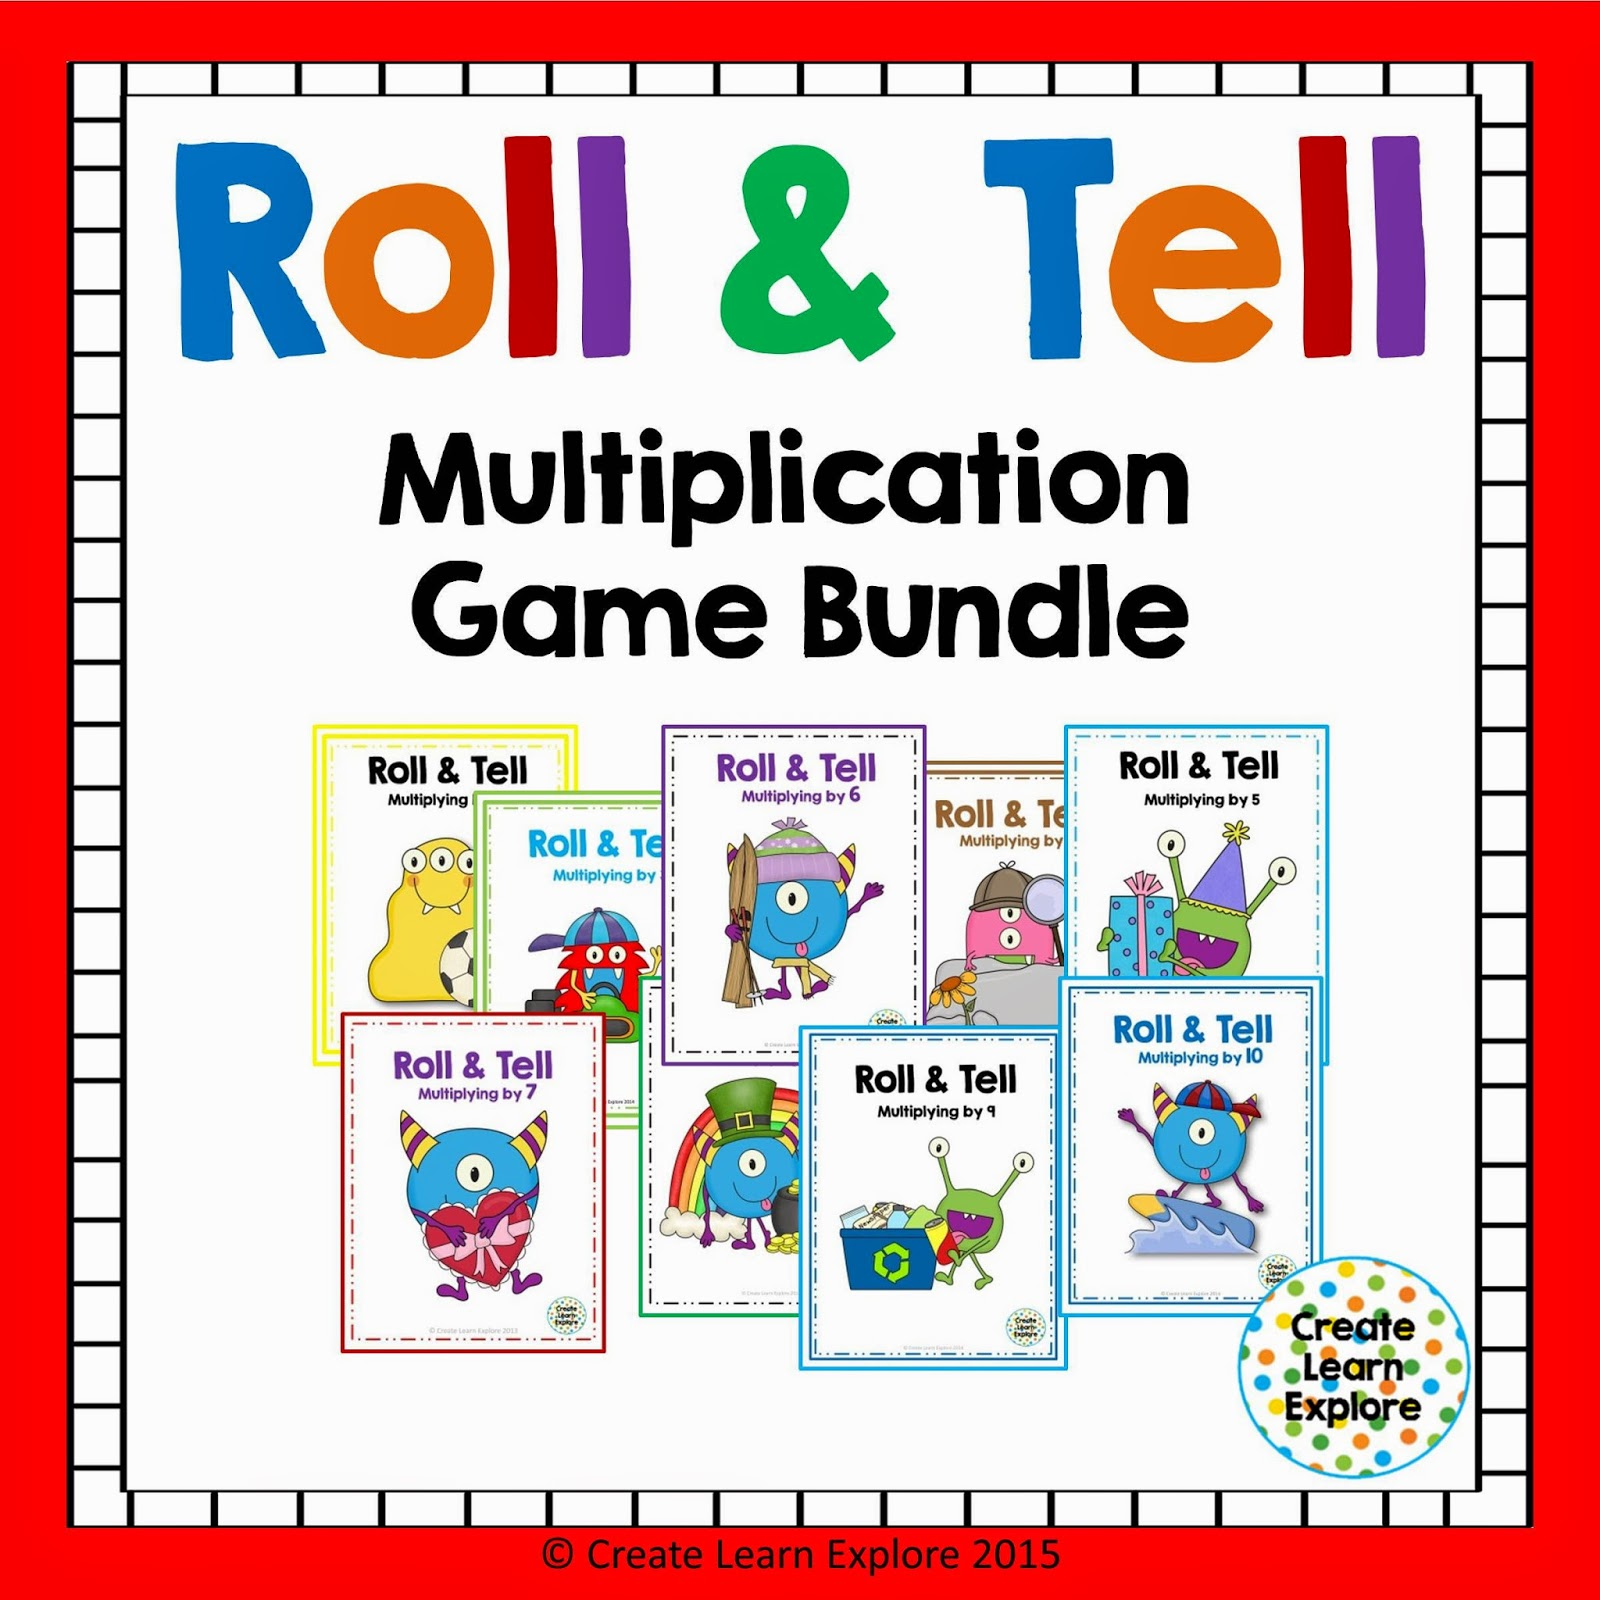 http://www.teacherspayteachers.com/Product/Multiplication-Roll-and-Tell-Bundle-1638979